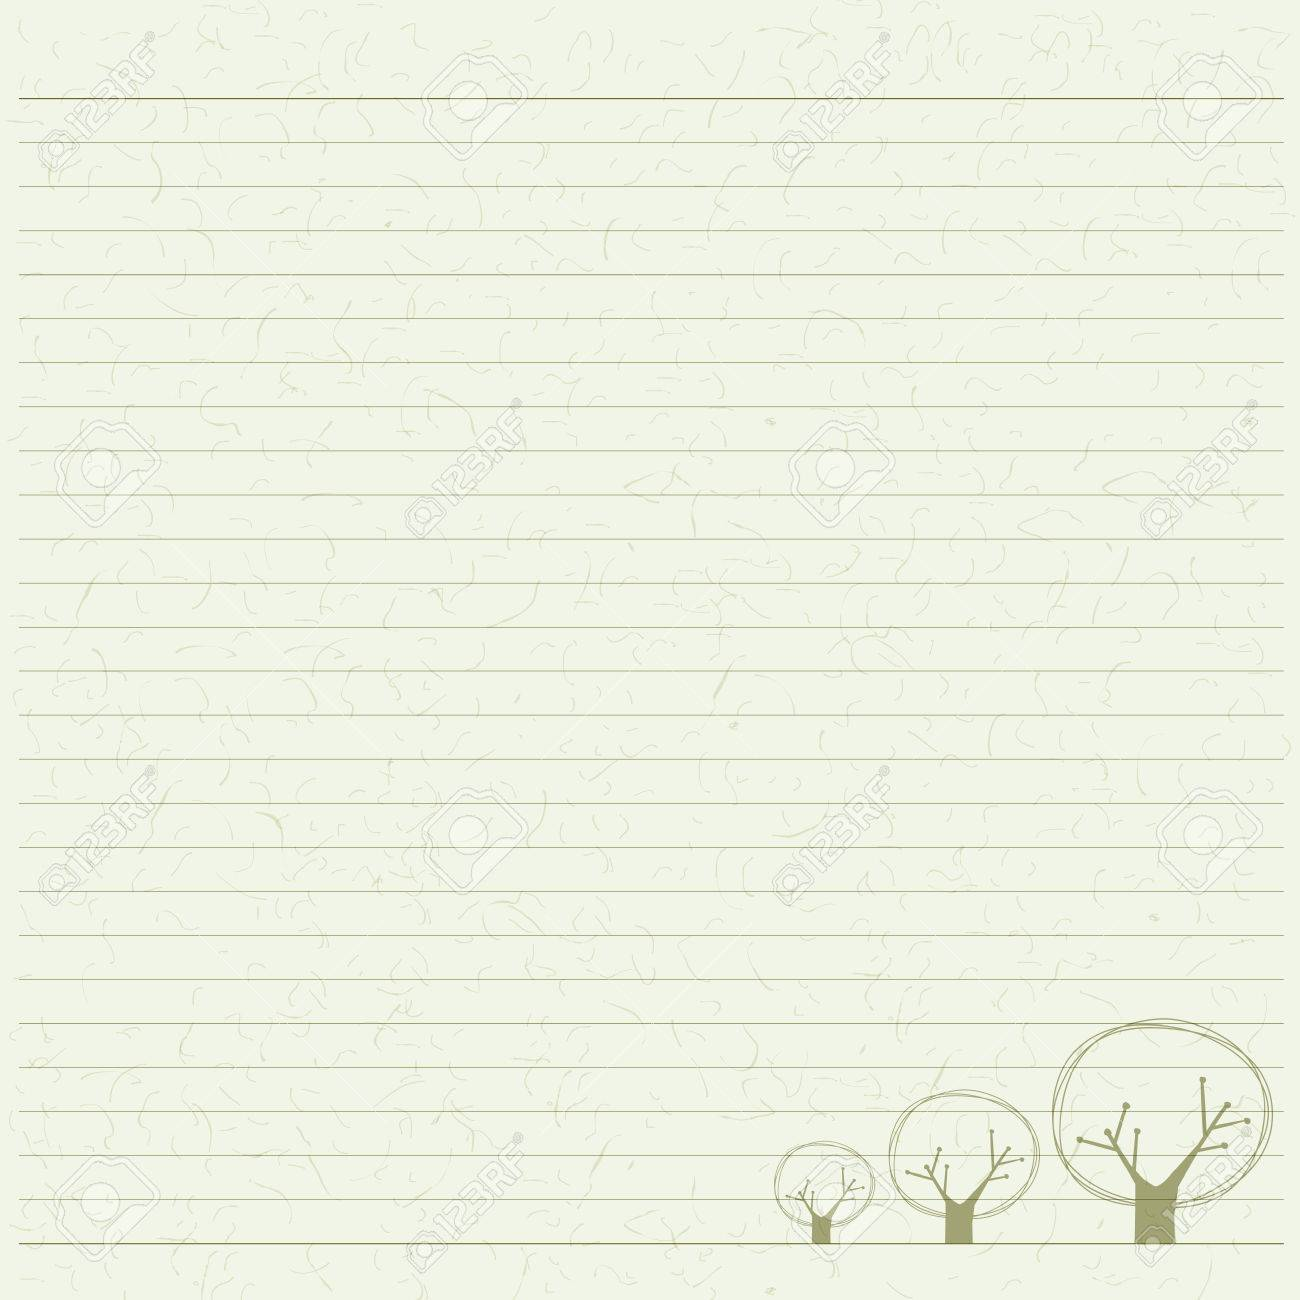 tree letter paper paper texture based on wood sketch royalty free